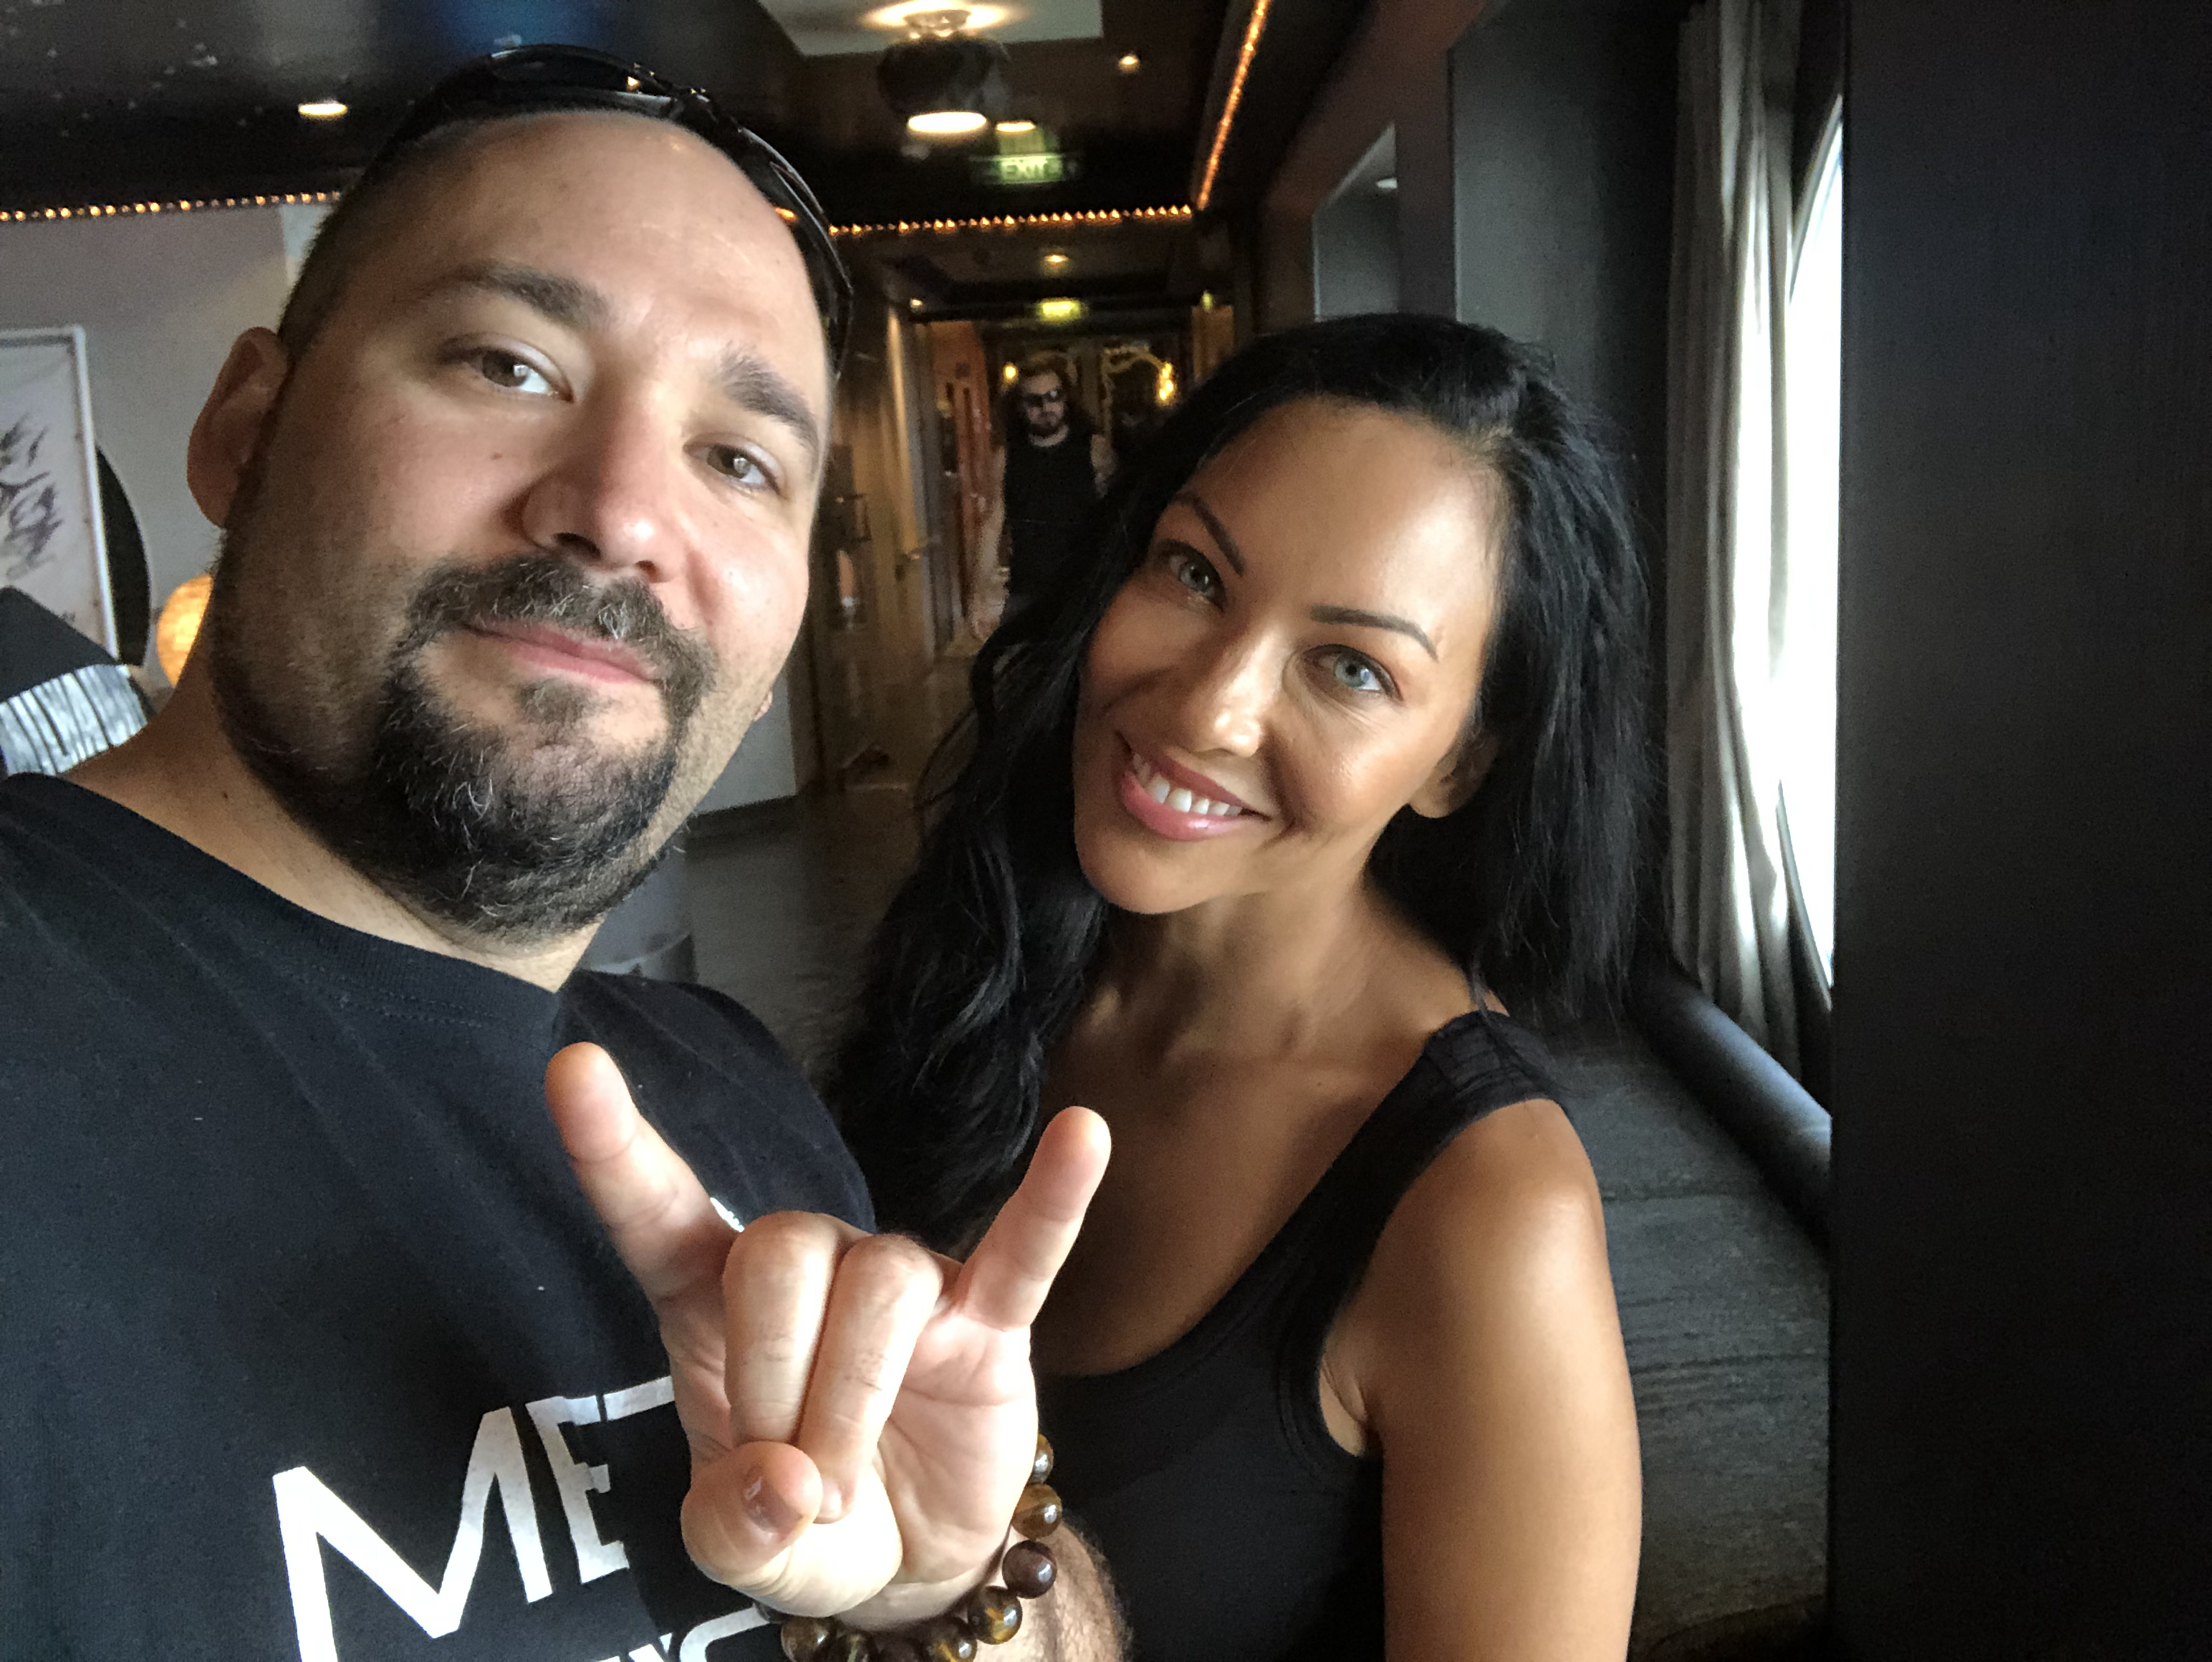 Did I mention the Lovely Carla Harvey?